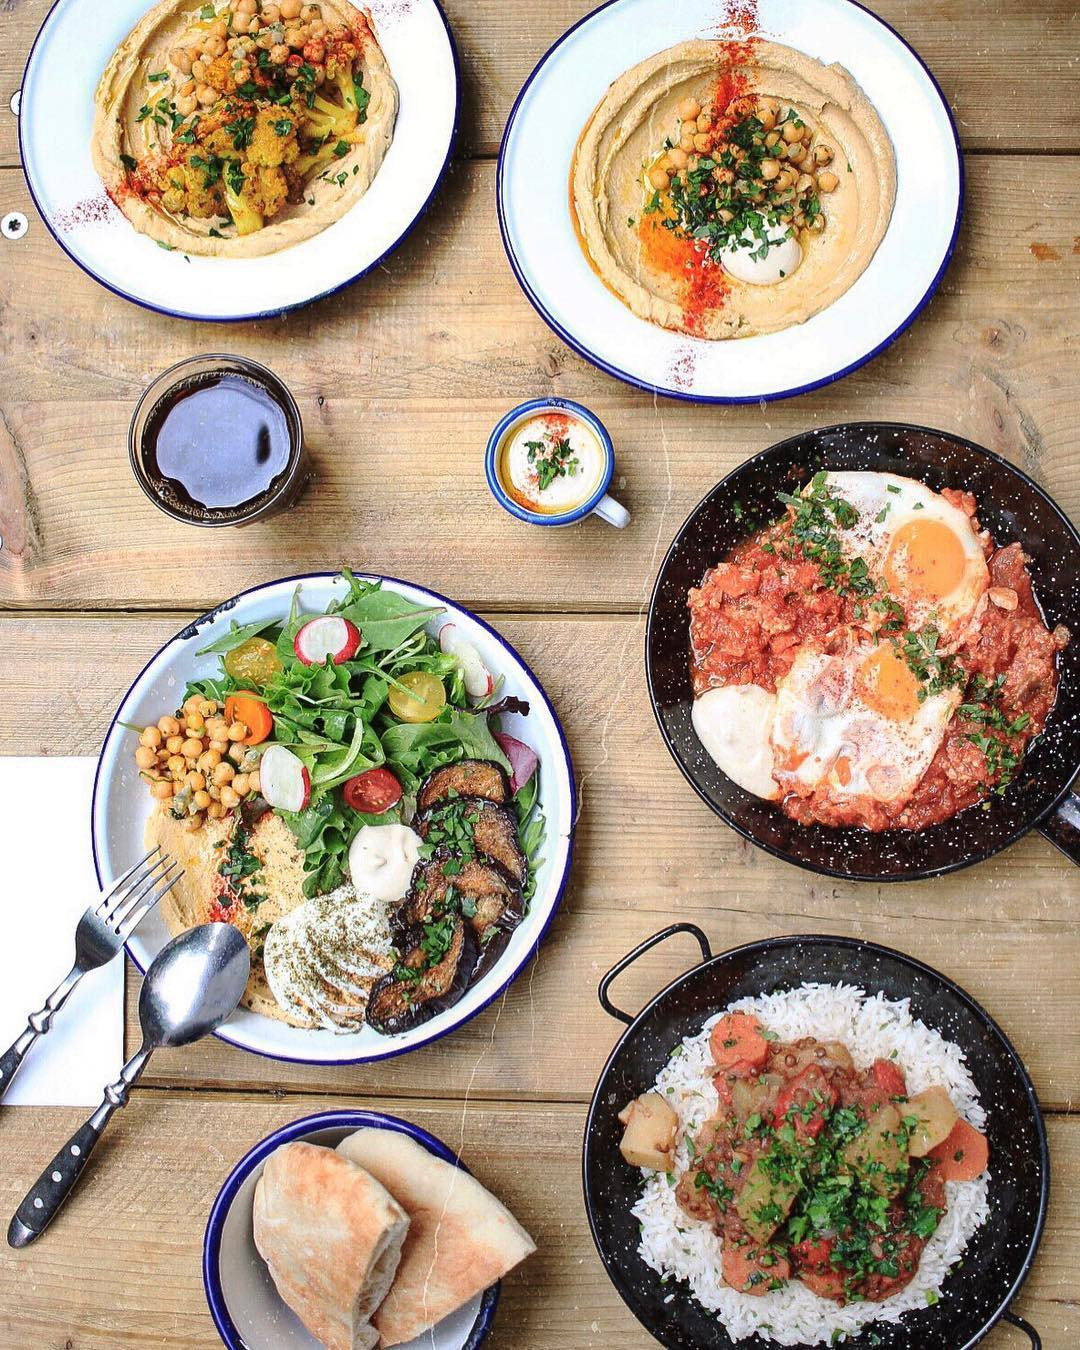 Israeli street food dishes served at Gordon, Sabich, hummus, pita bread, aubergines, eggs, tomatoes in a pan with herbs